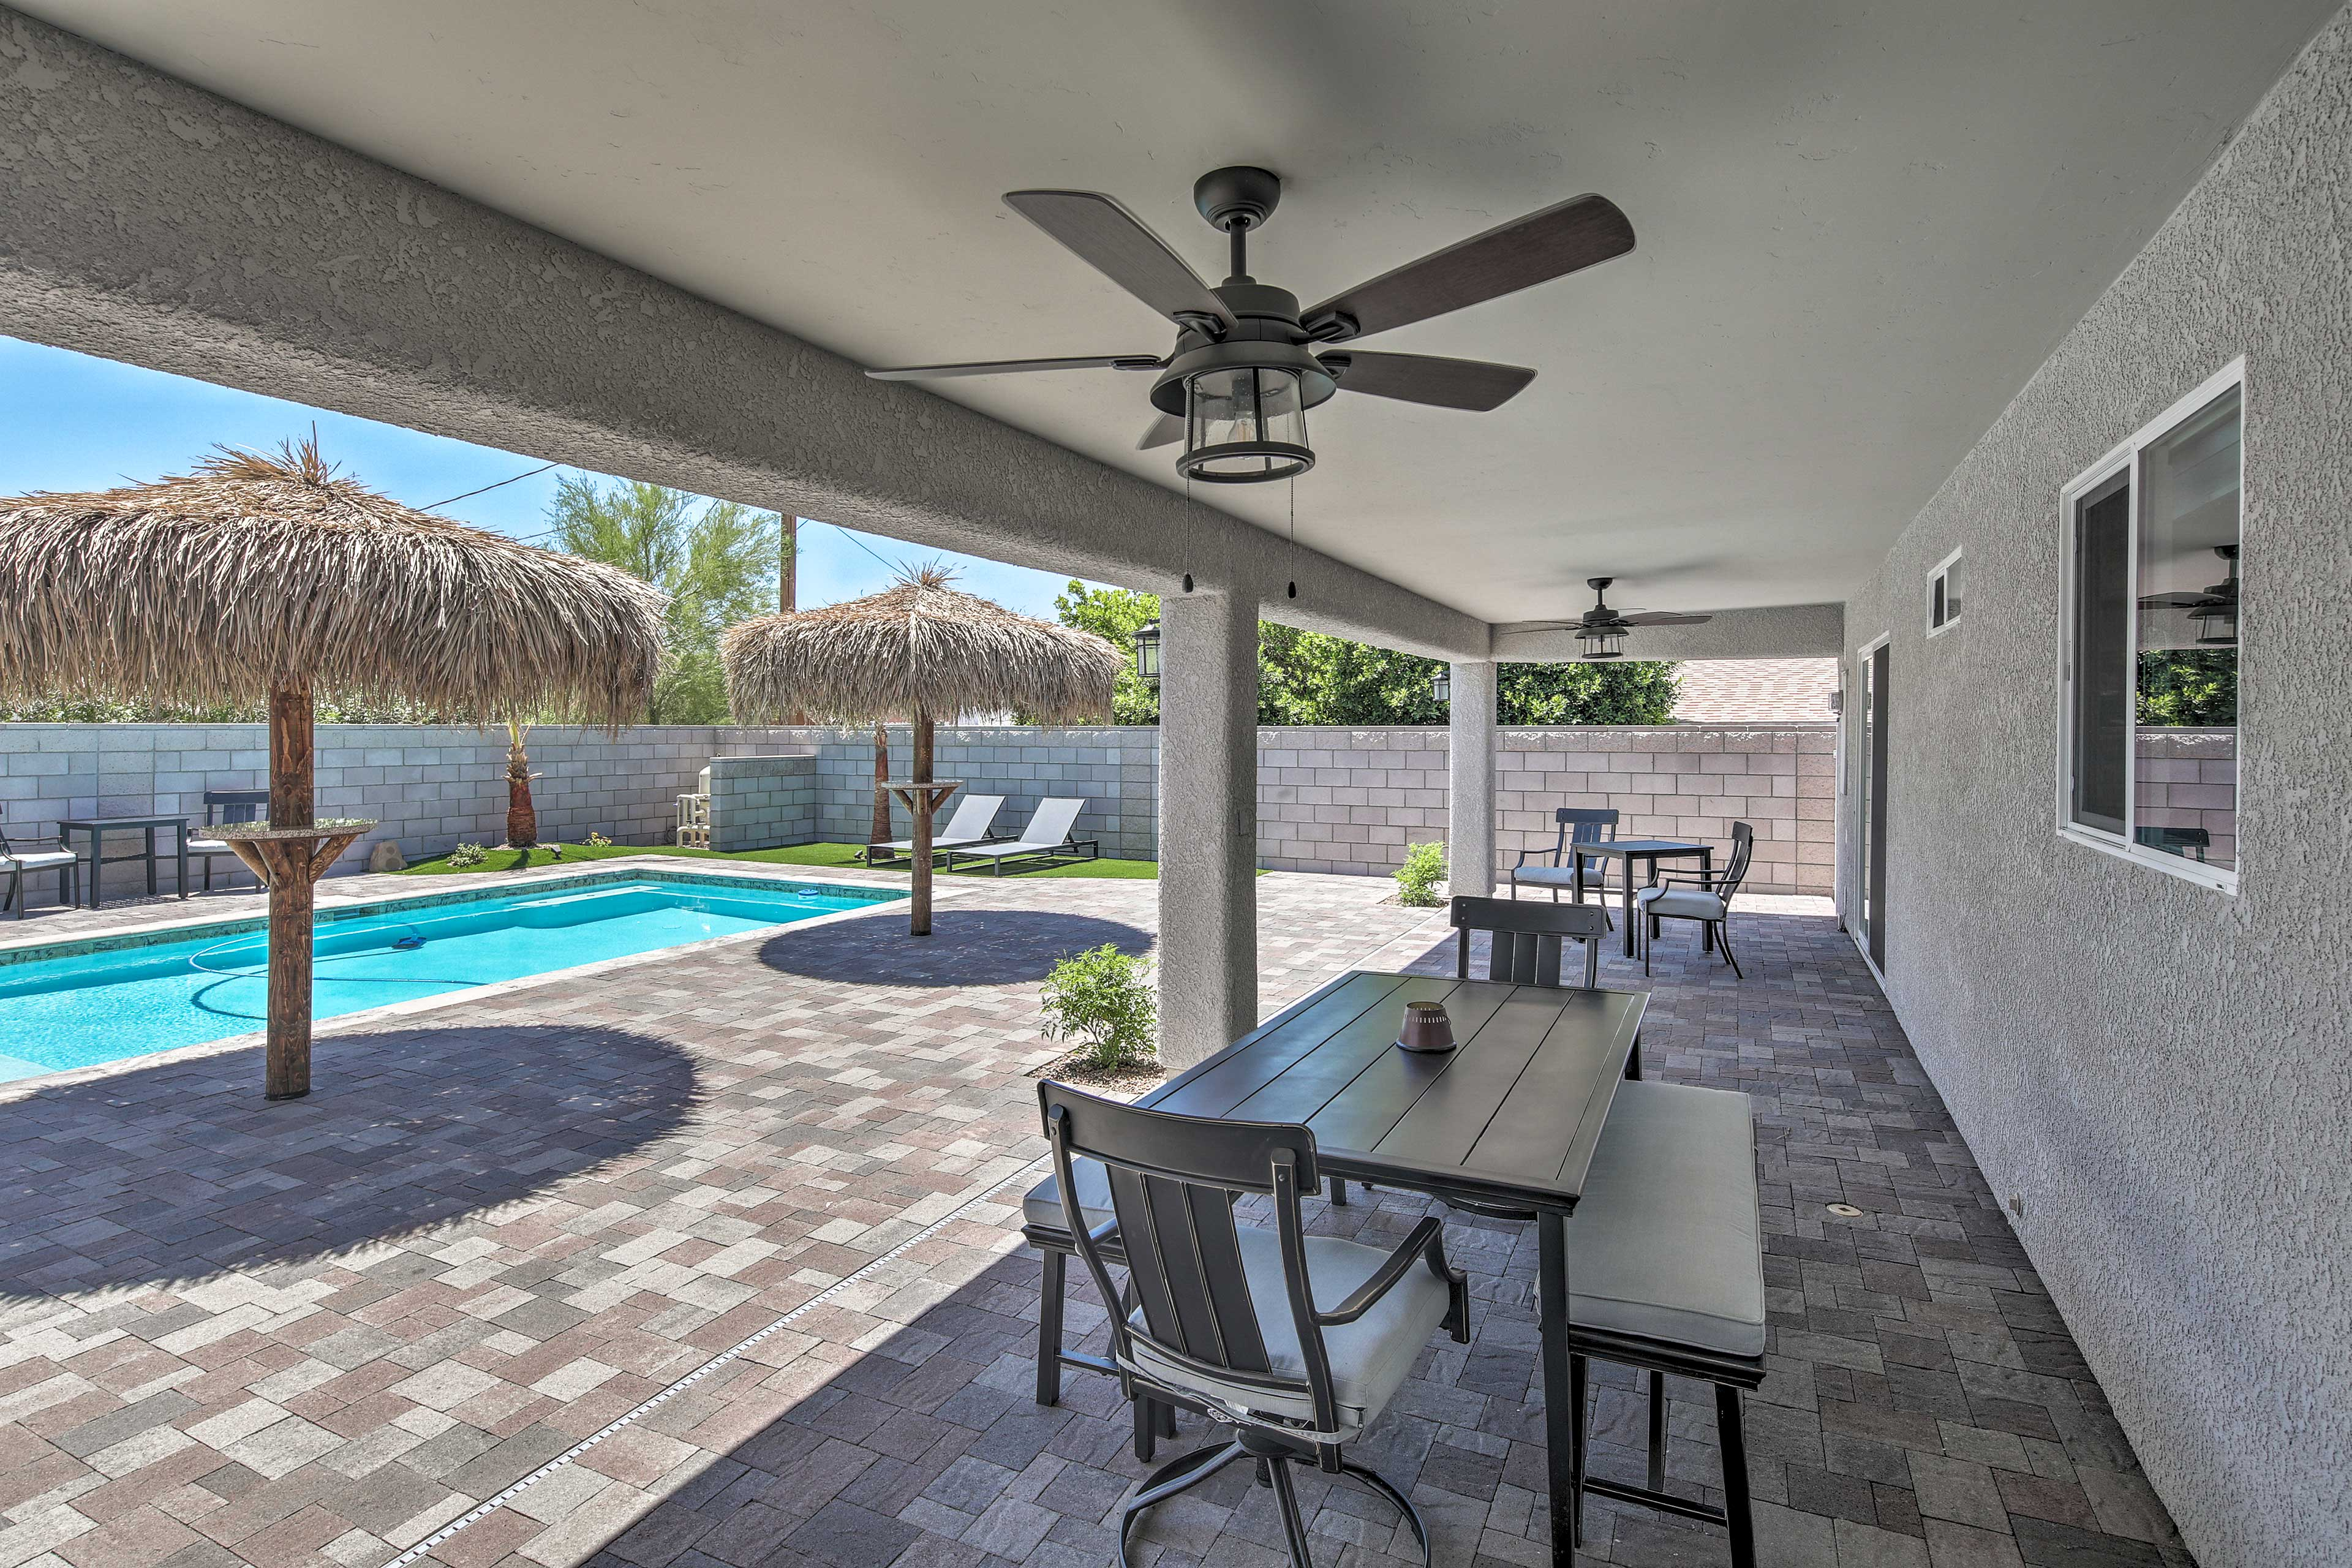 Enjoy a personal paradise in the backyard.